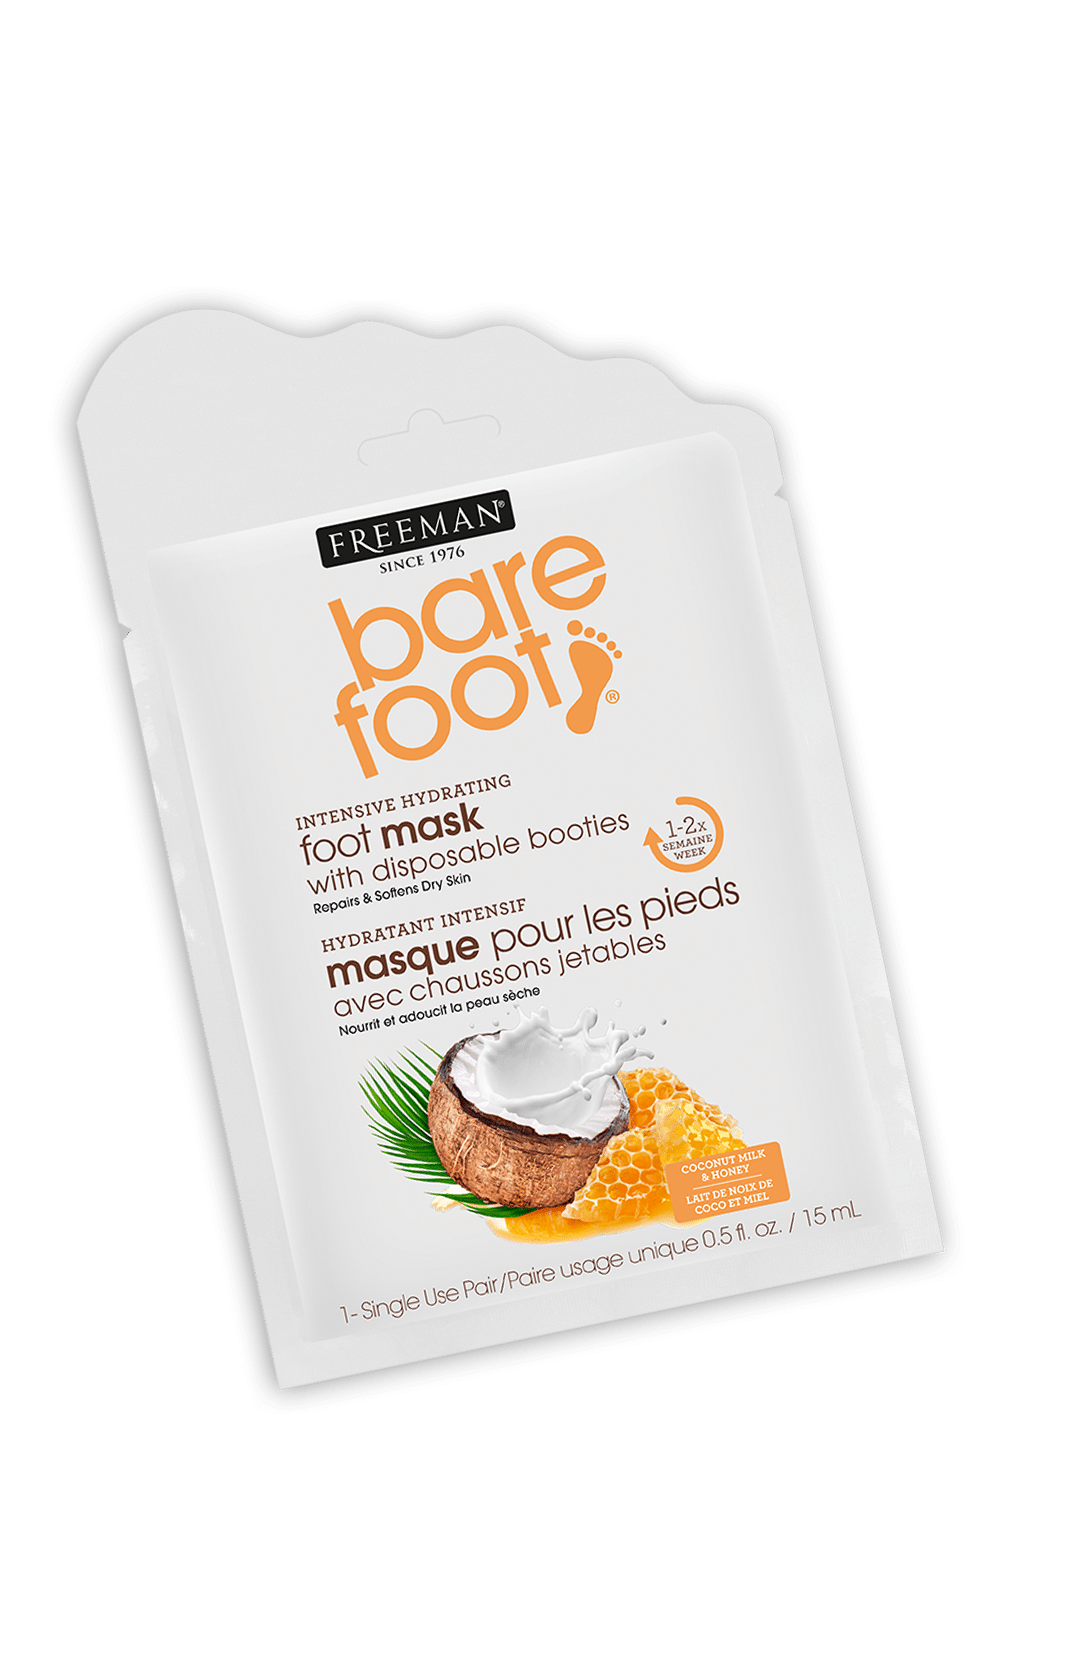 INTENSIVE HYDRATING foot mask COCONUT MILK & HONEY